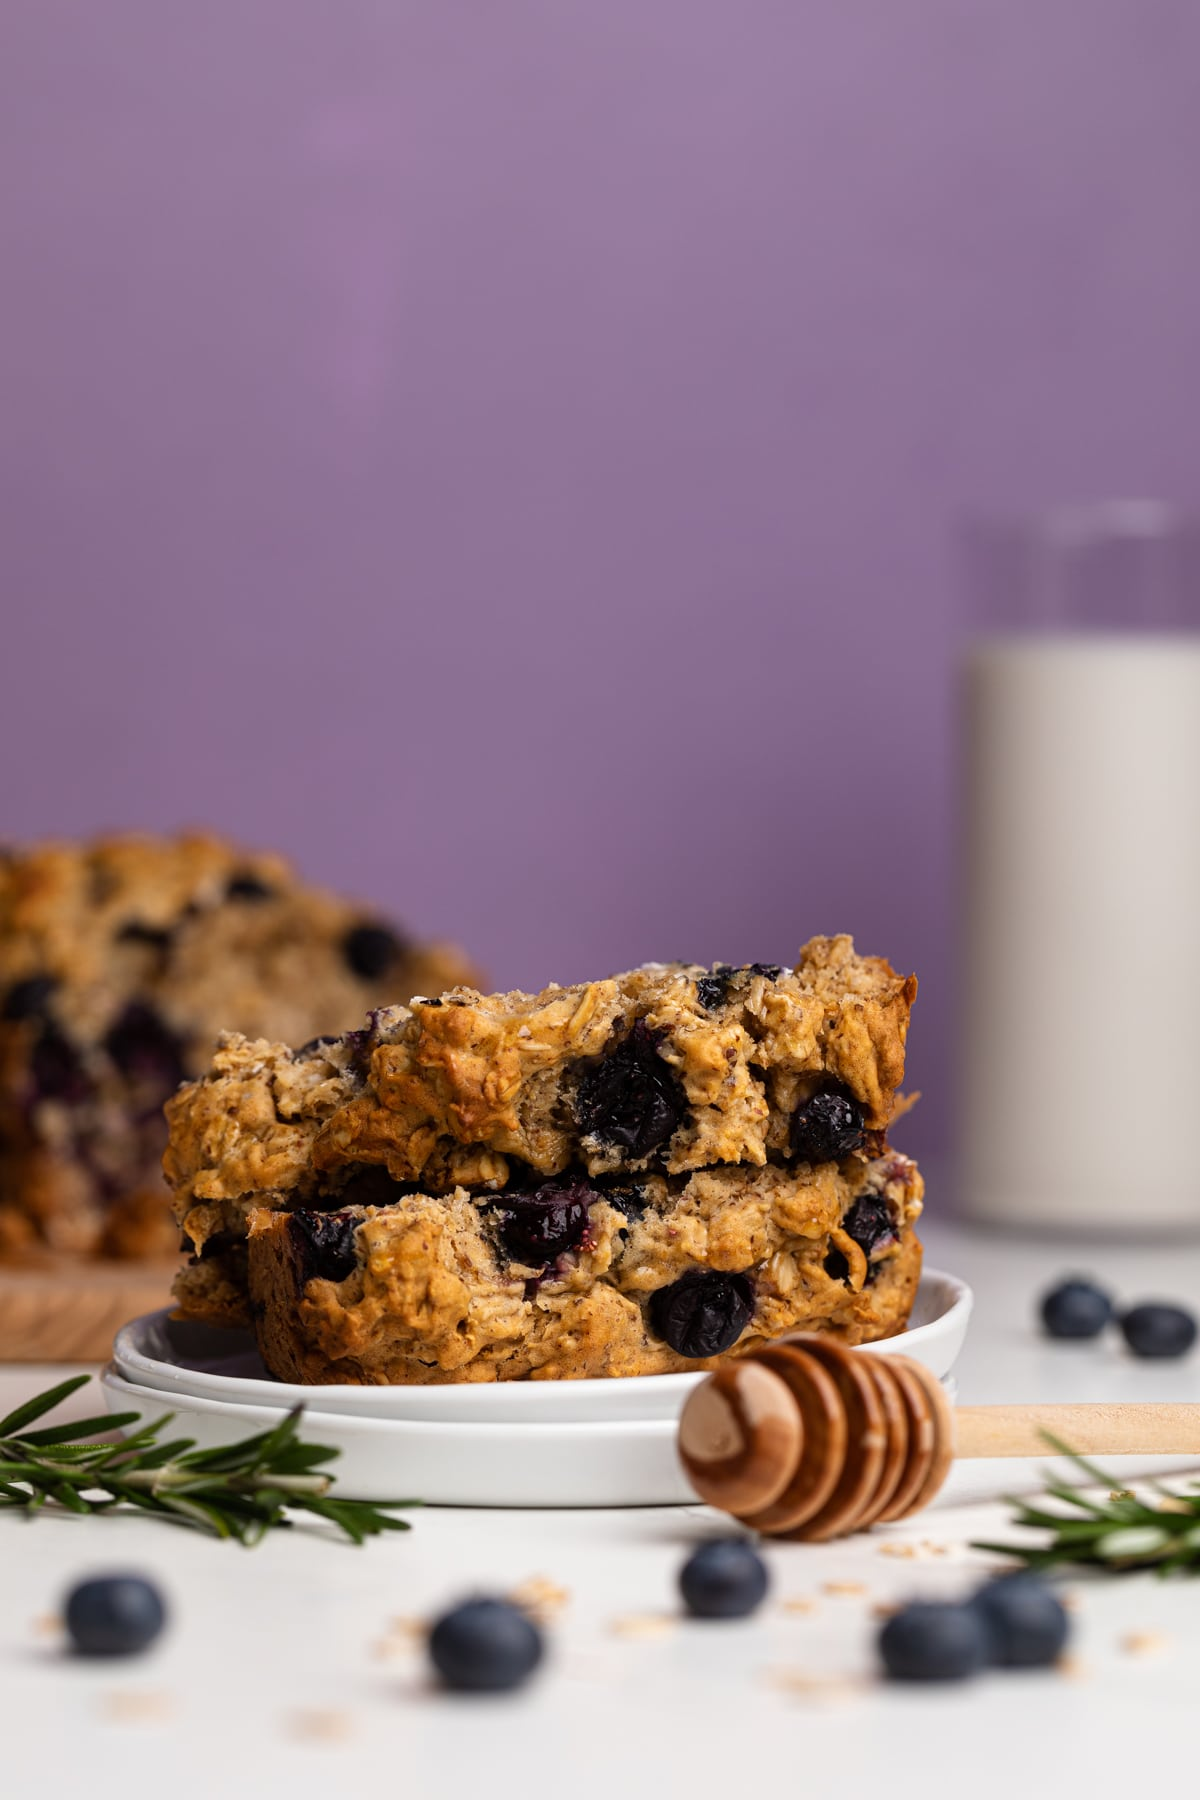 Healthy Blueberry Oatmeal Breakfast Bread slices on a plate with fresh berries and rosemary